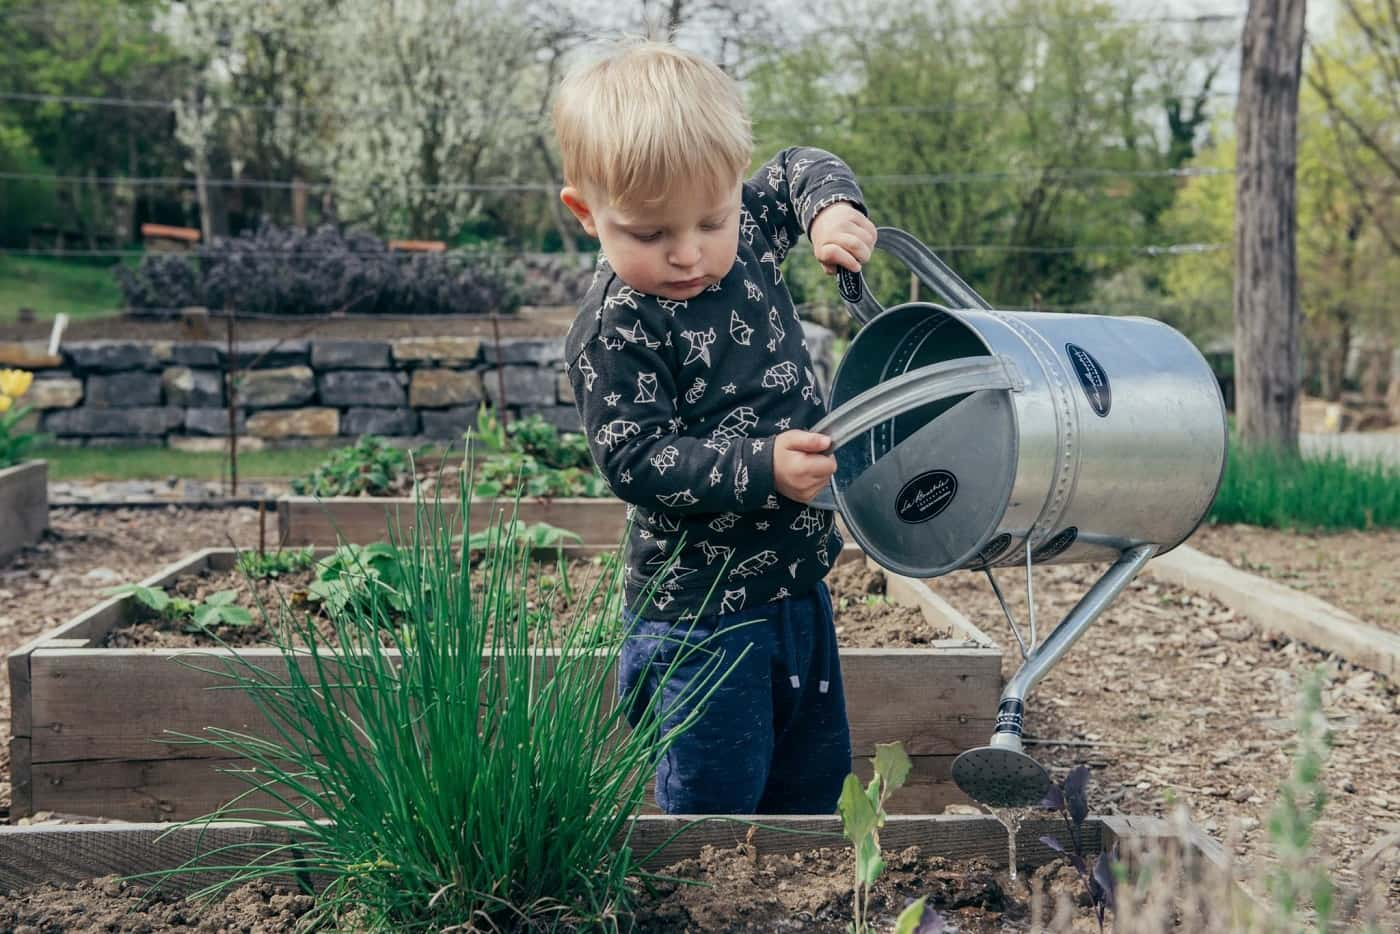 The Top 4 Outdoor DIY Projects To Do With Your Family. Watering the plants by boy with tin hand sprinkler